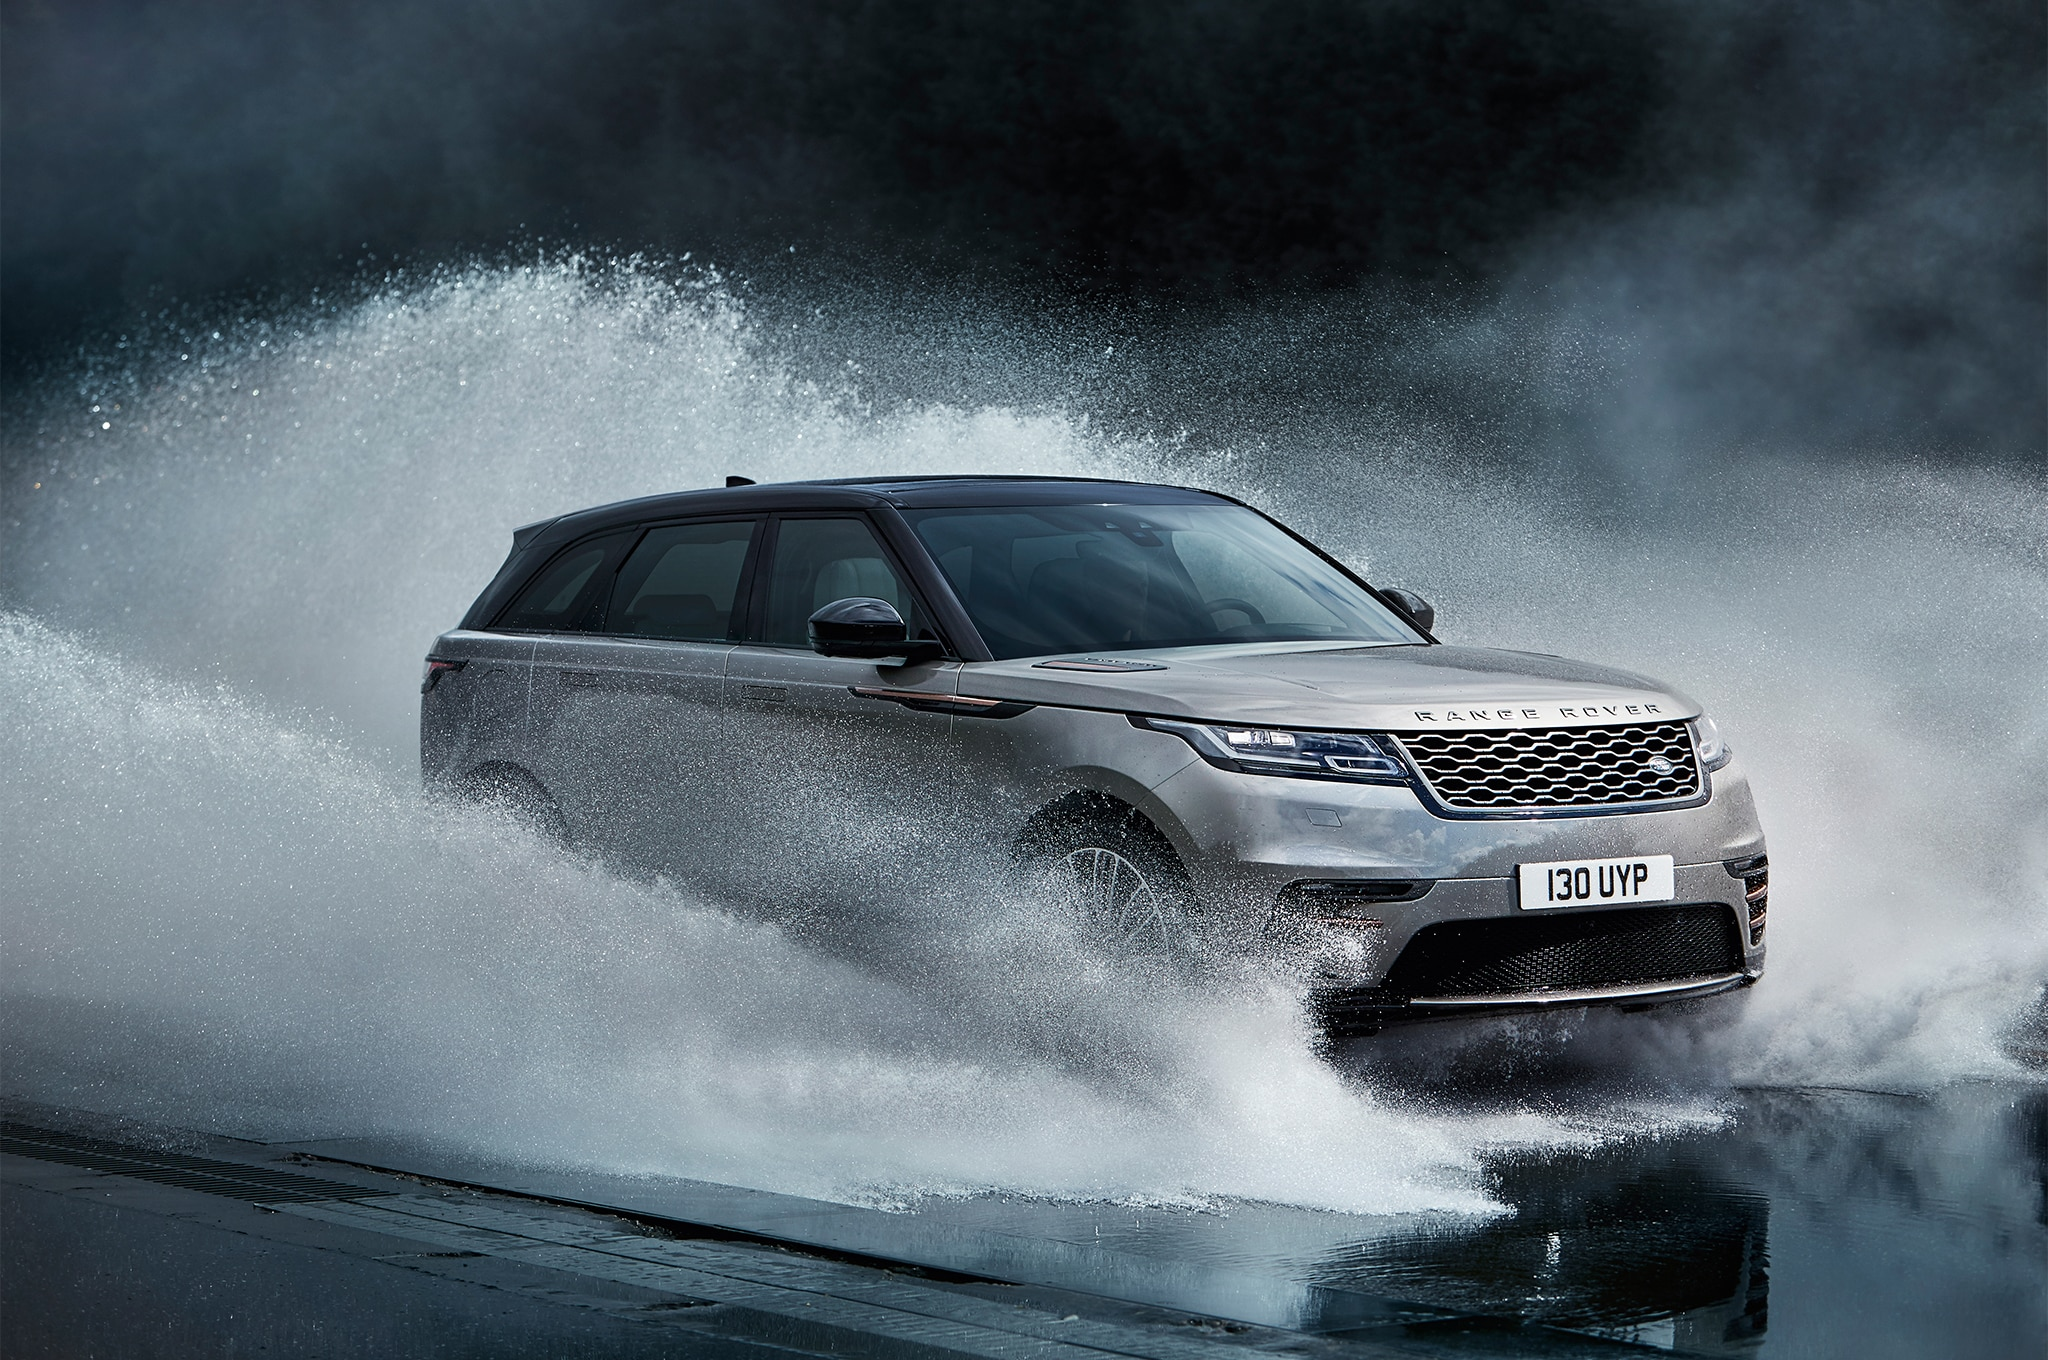 2018 Land Rover Range Rover Velar Front Three Quarter In Water